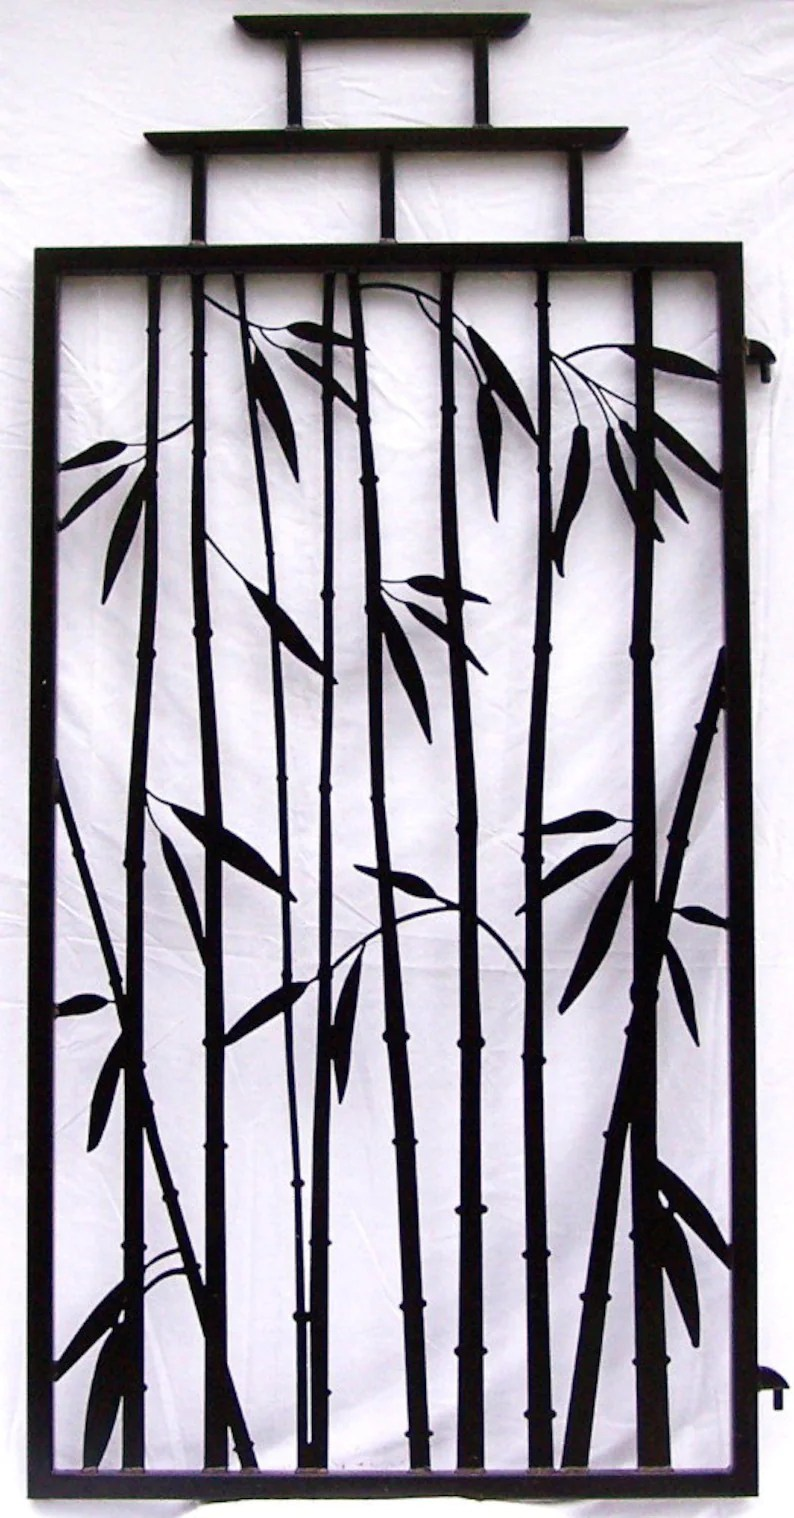 Bamboo Fence Canada Steel Bamboo Fence Gate Asian Temple Style 6 Tall Wrought Iron